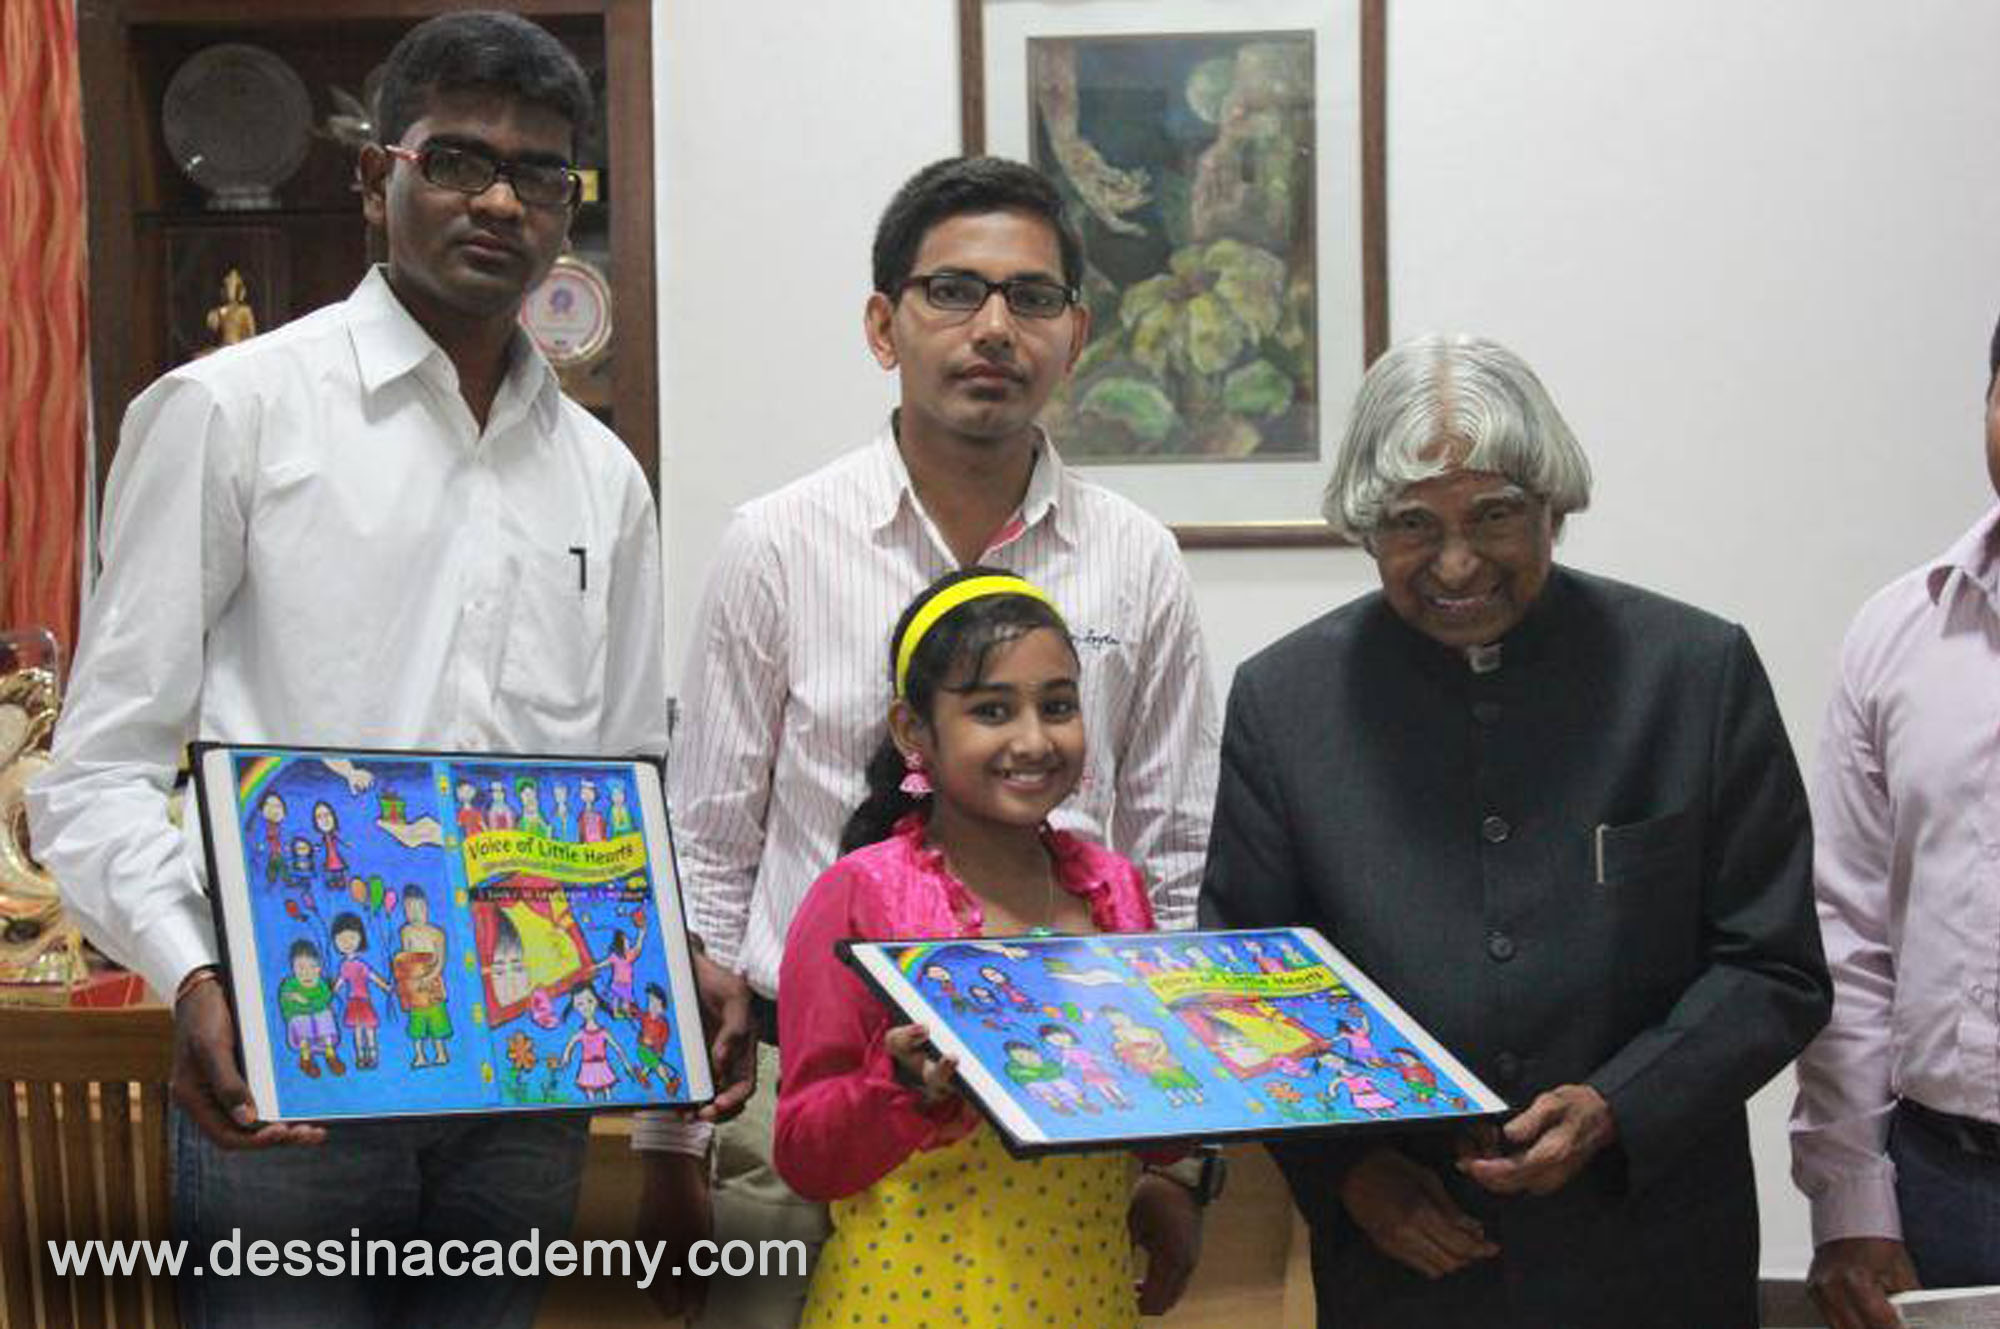 Dessin School of Arts Students Acheivement 1, Dessin School of Arts, charcoal Drawing classes For Kids in chennai